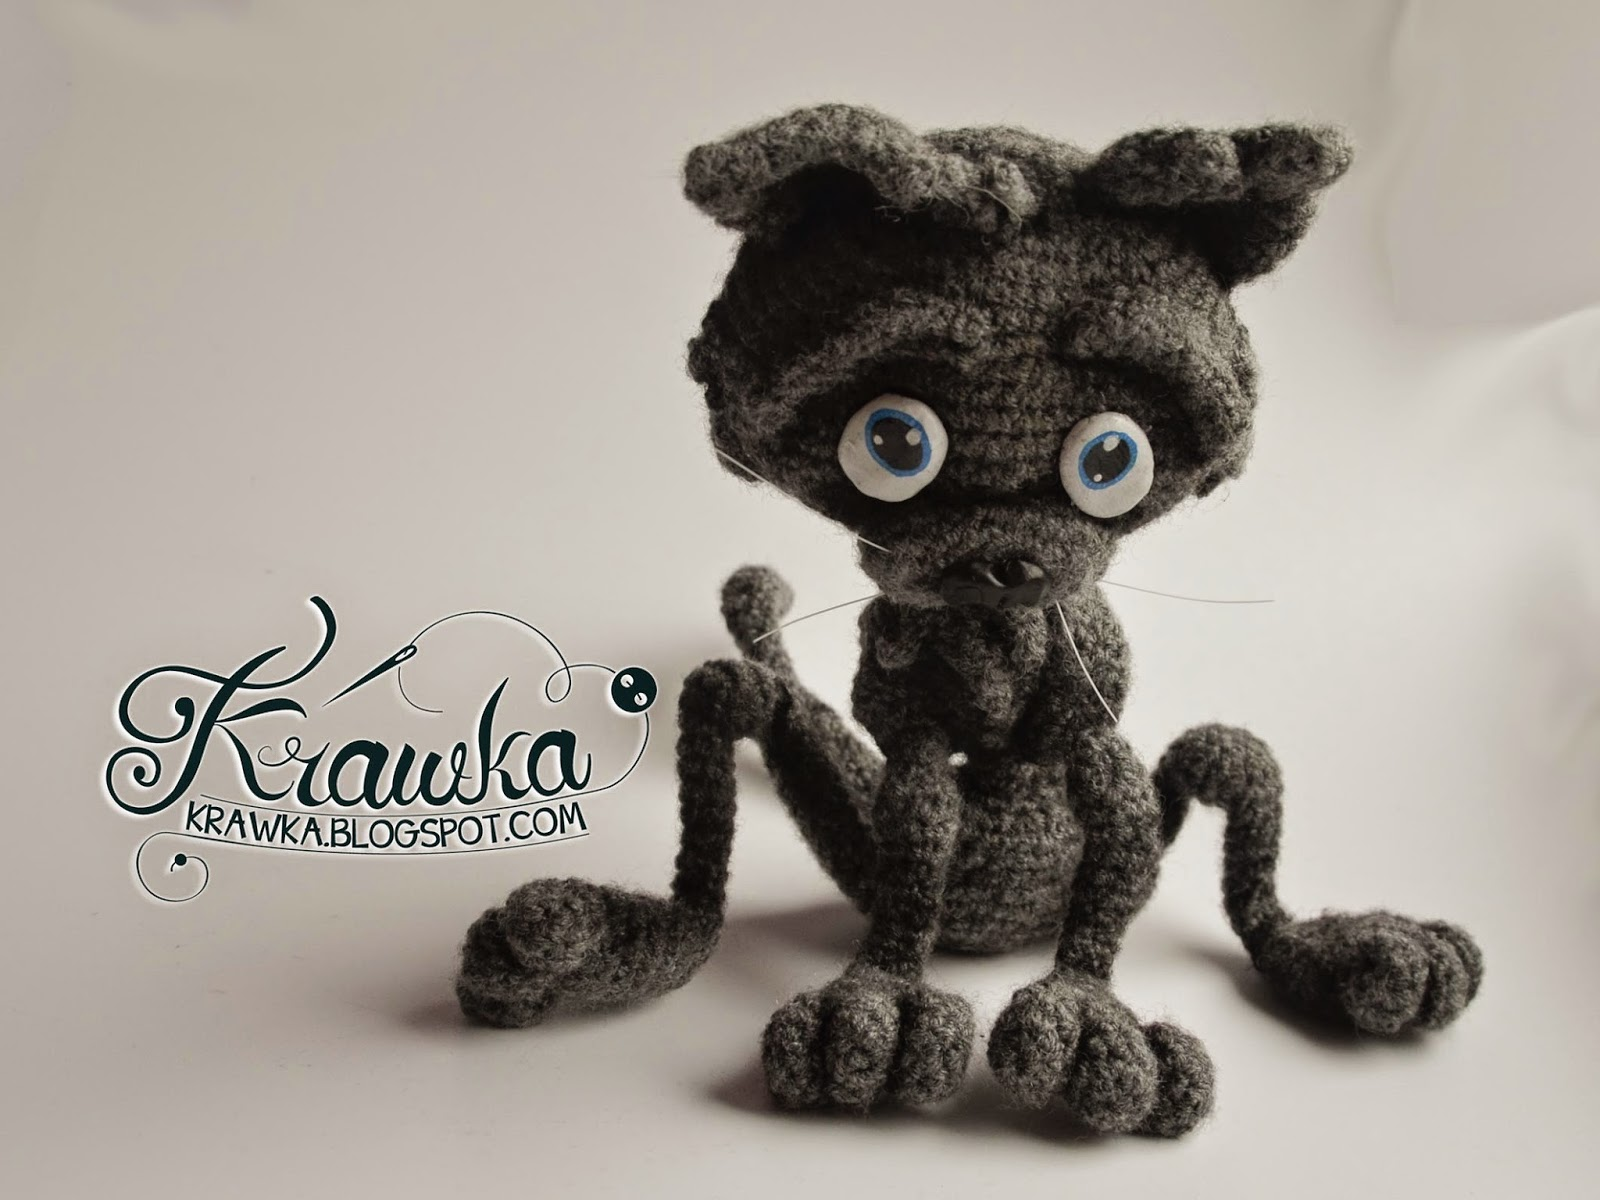 Krawka: Crochet smelly cat, wires inside, eyes and nose made from modeling clay